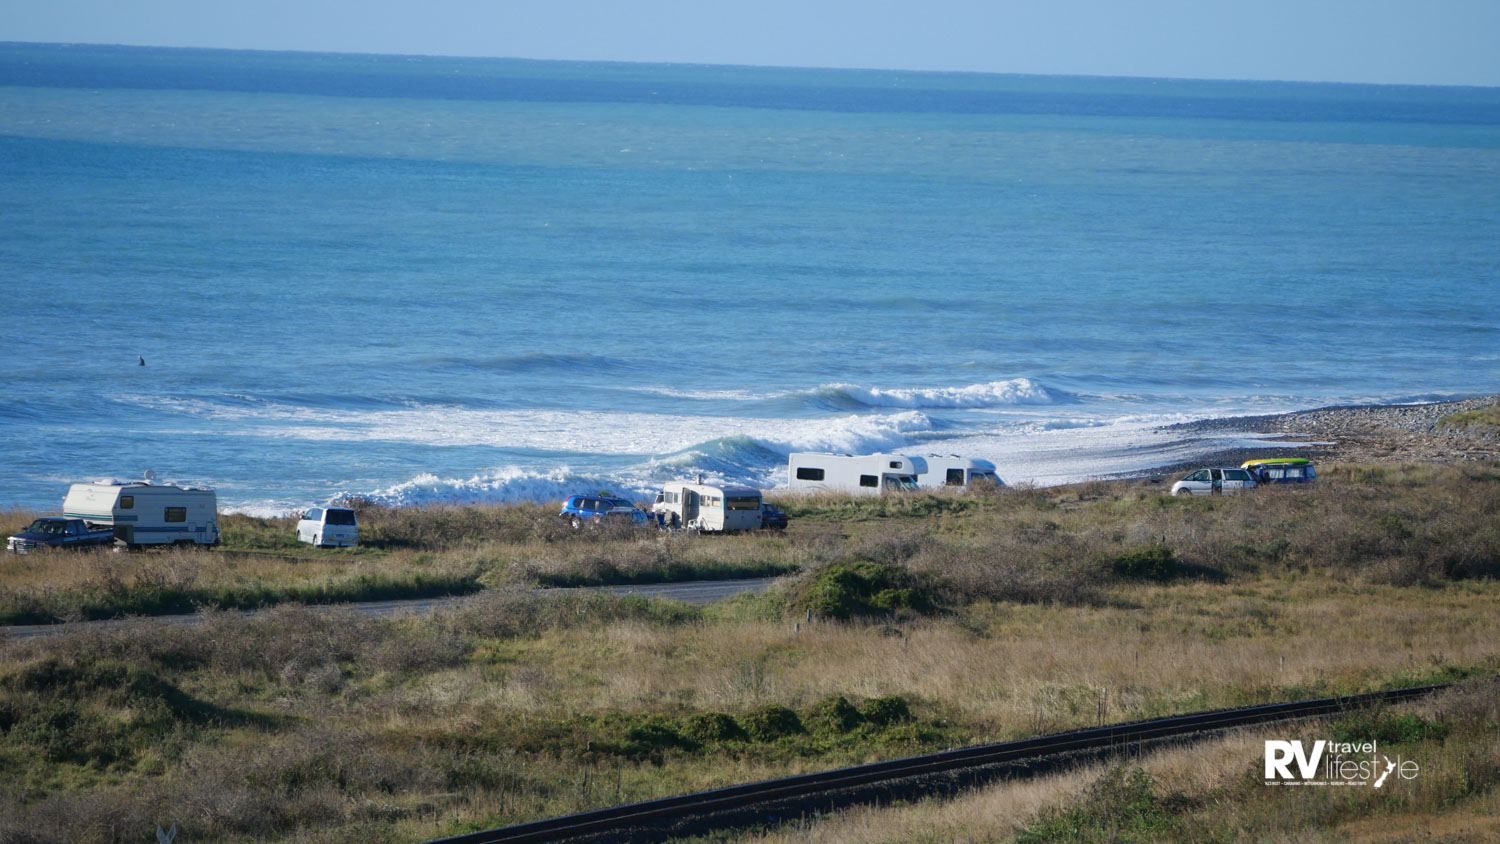 Freedom camping area north of Kaikoura – this becomes quite packed out now as there are very few spots to stop on the way down the coast nowadays